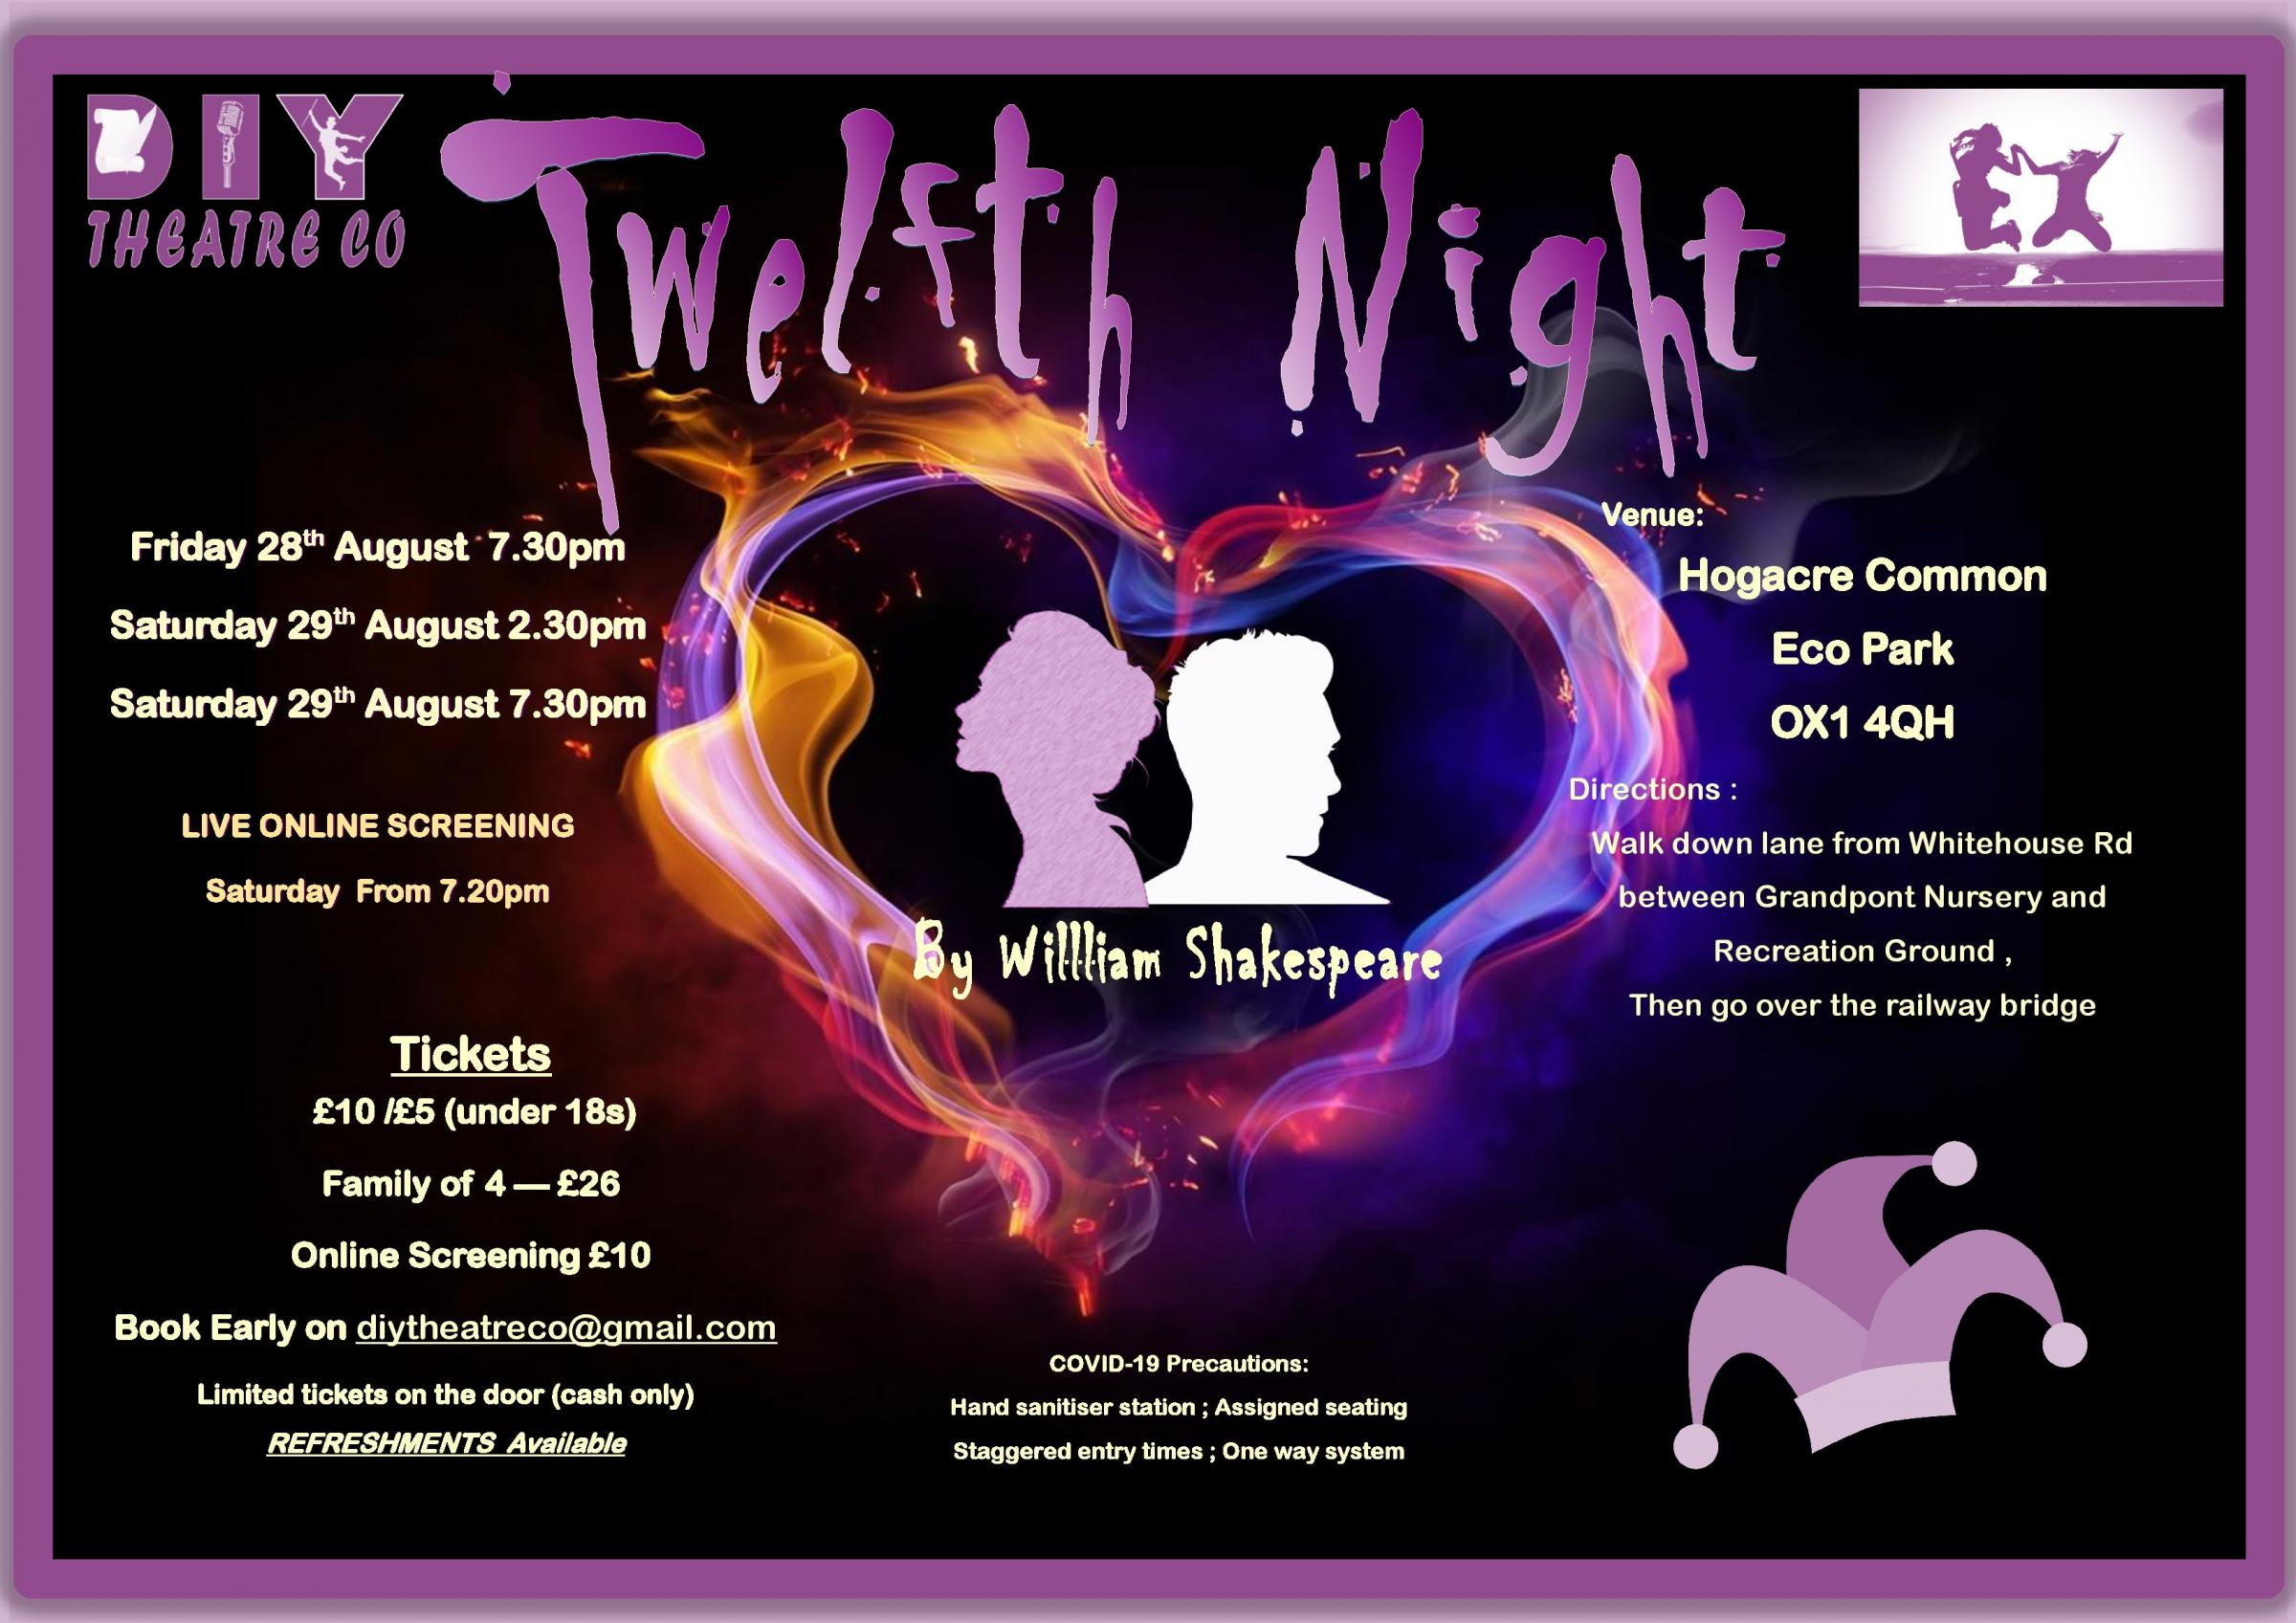 Twelfth Night by William Shakespeare presented by DIY Theatre & Co